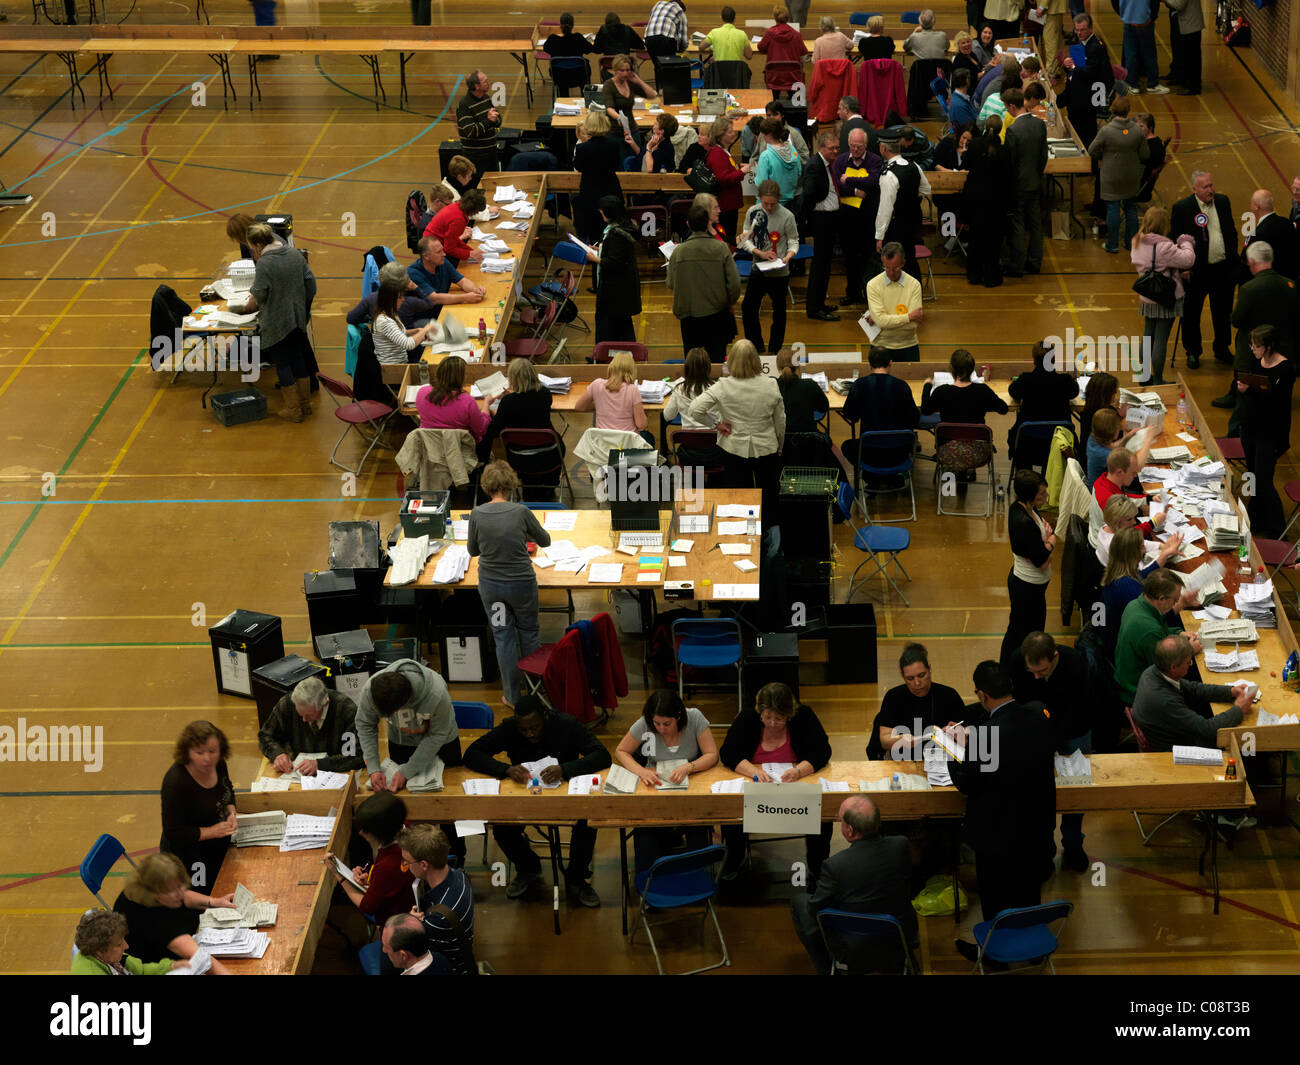 Counting Votes After General Elections May 2010 At Westcroft Leisure Centre Surrey England - Stock Image